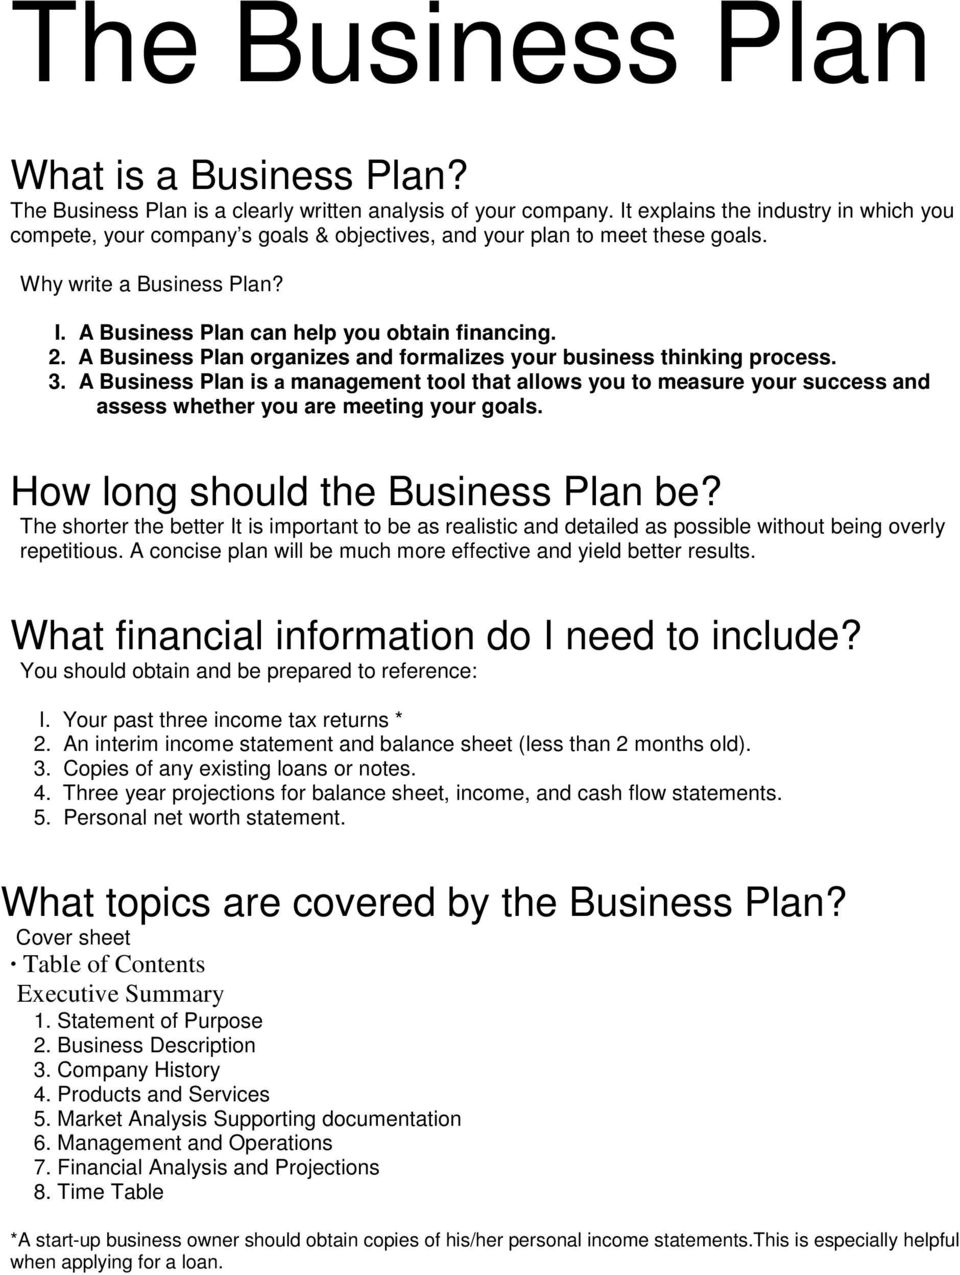 A Business Plan organizes and formalizes your business thinking process. 3. A Business Plan is a management tool that allows you to measure your success and assess whether you are meeting your goals.